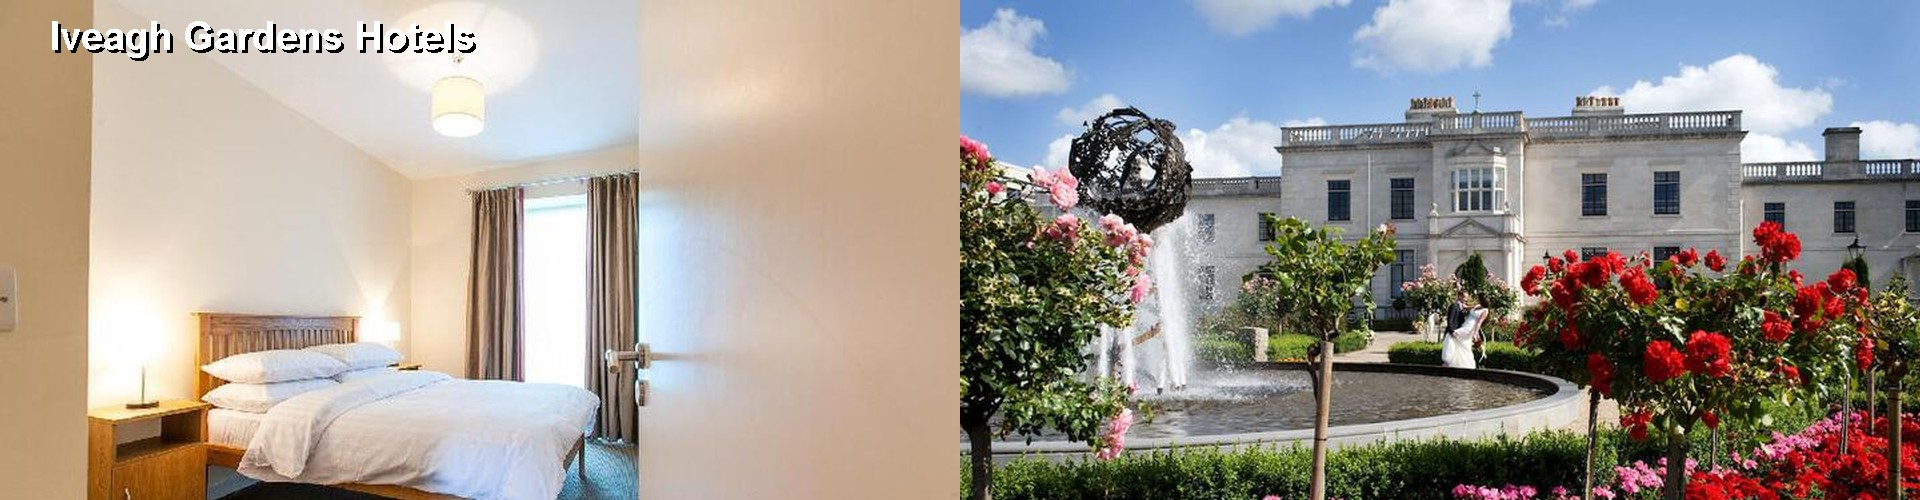 5 Best Hotels near Iveagh Gardens